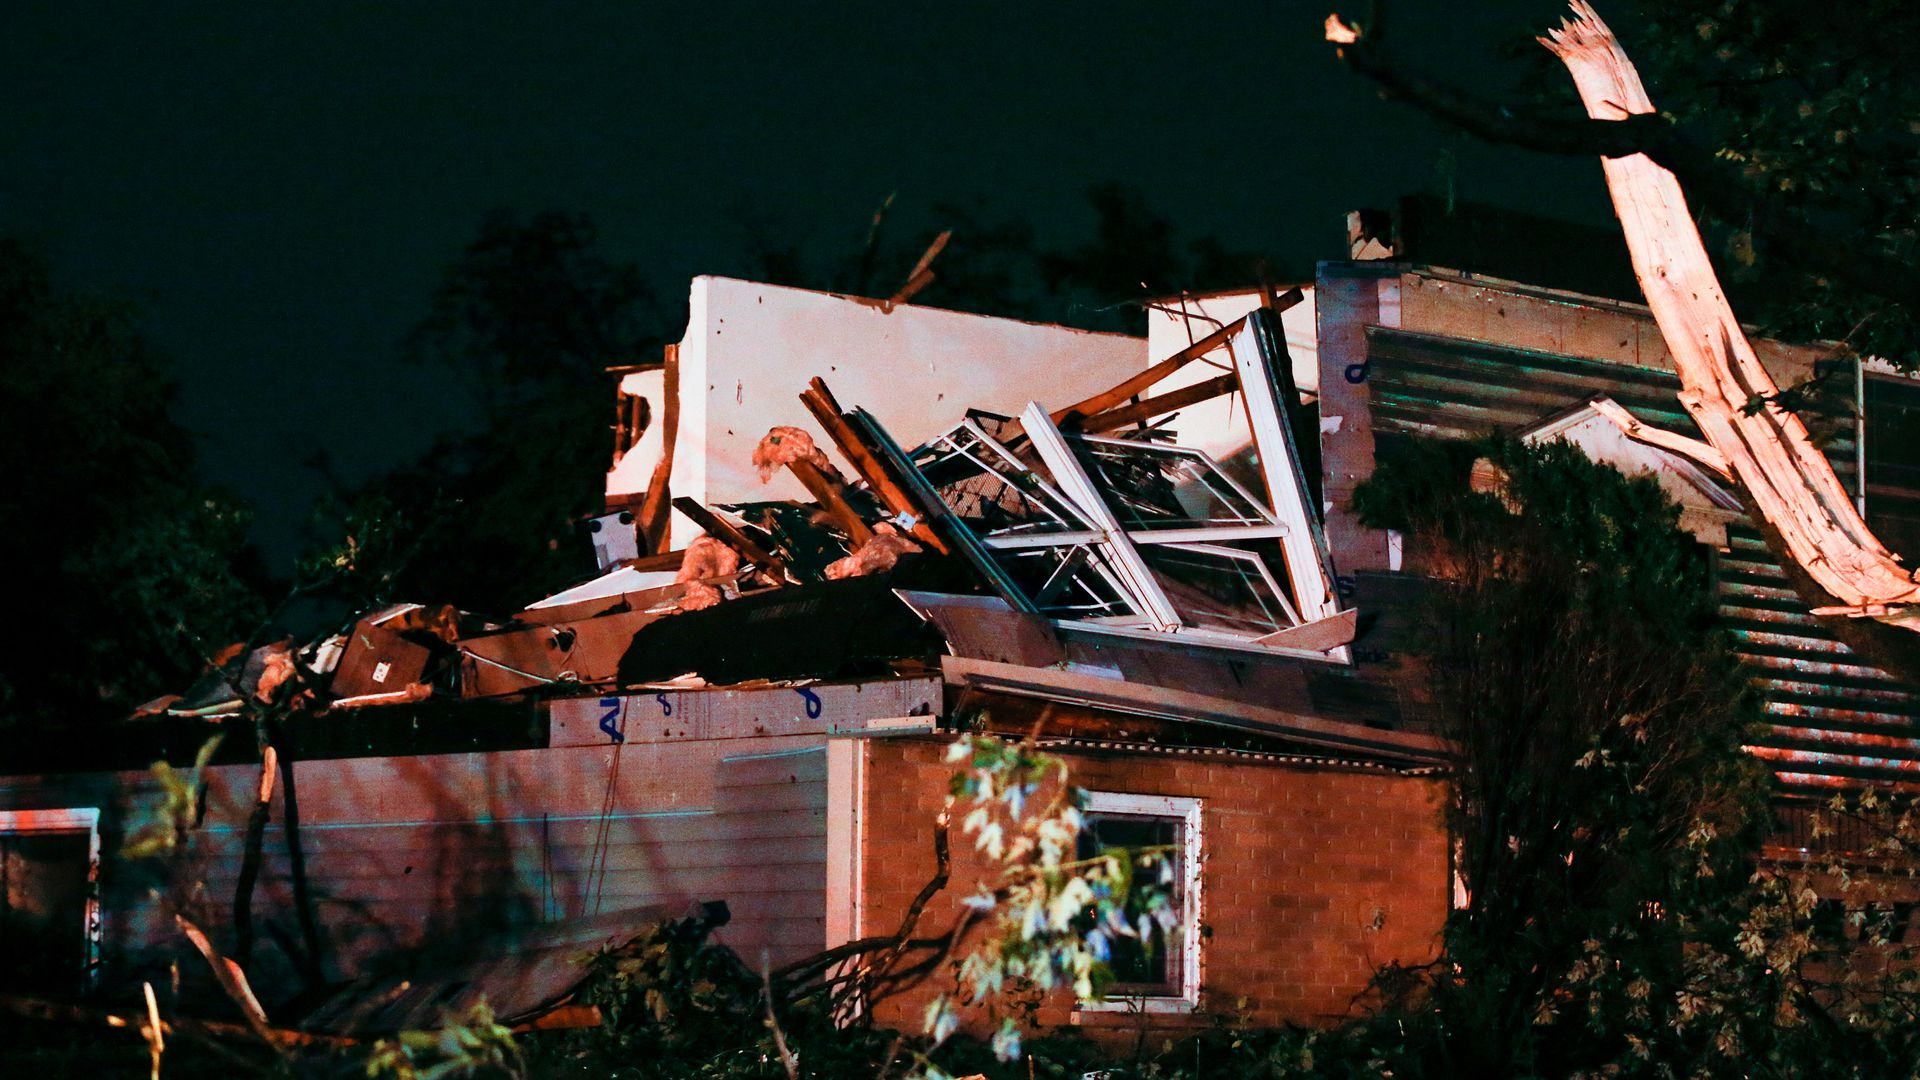 A house on the 2700 block of Jonquil Lane suffered severe damage on June 21, 2021 after a tornado came through the area in Woodridge, Illinois.